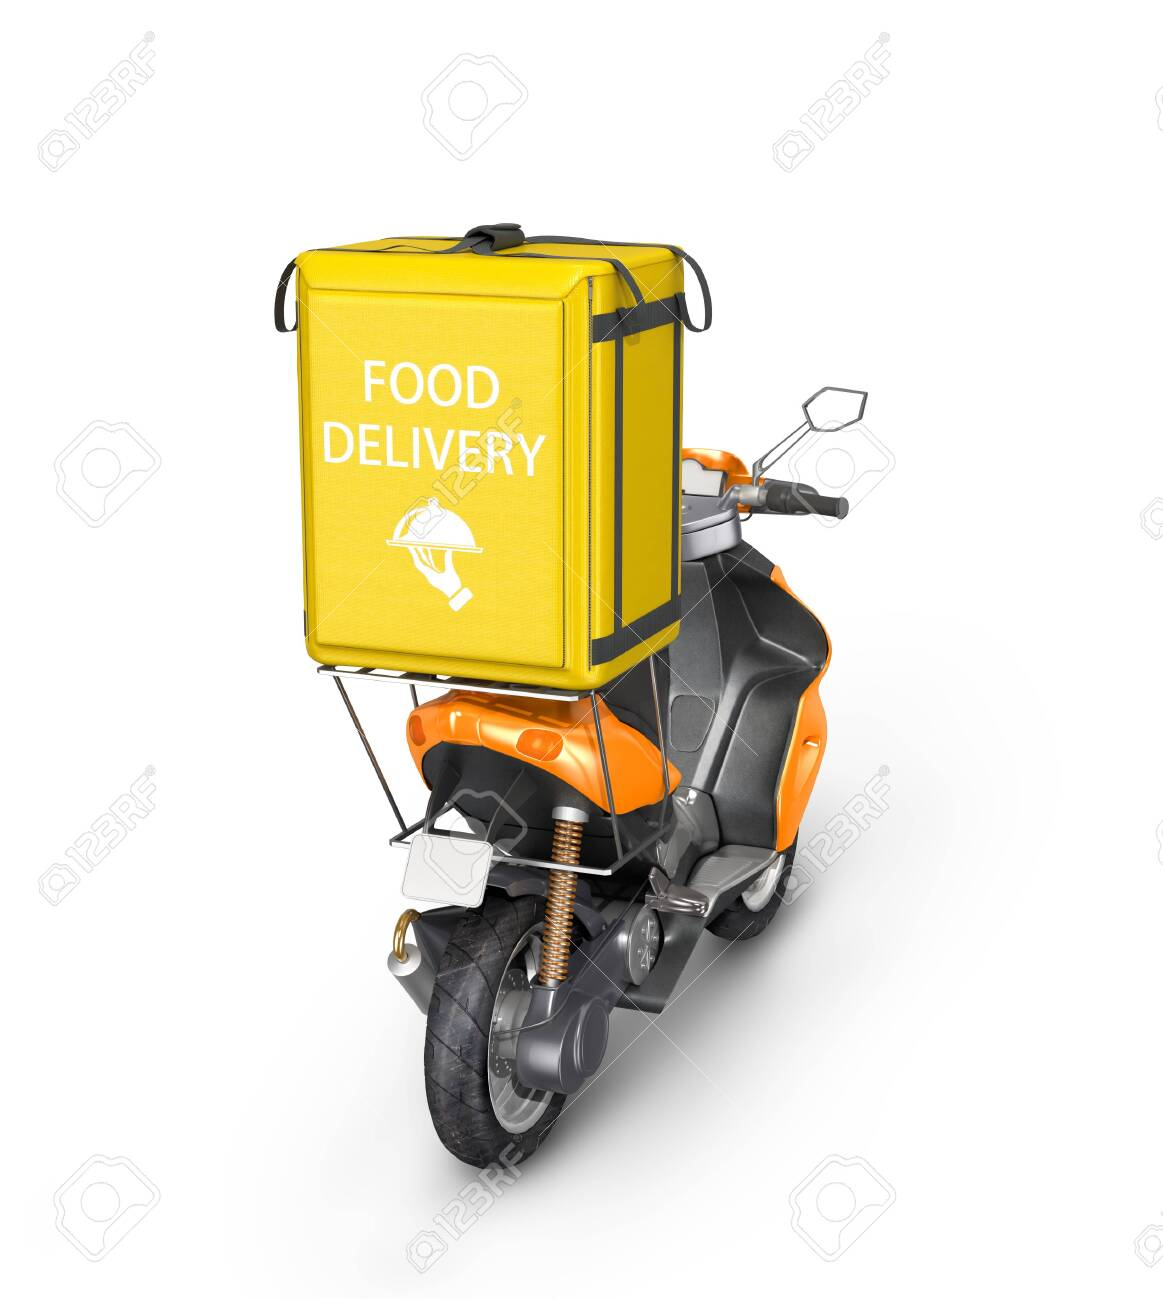 Using smart object layer you can place the logo design and cap color scheme easier and faster. Food Delivery Yellow Bag For Food Delivery On The Trunk Of A Motorcycle Scooter Delivery Services 3d Illustration Stock Photo Picture And Royalty Free Image Image 138875883